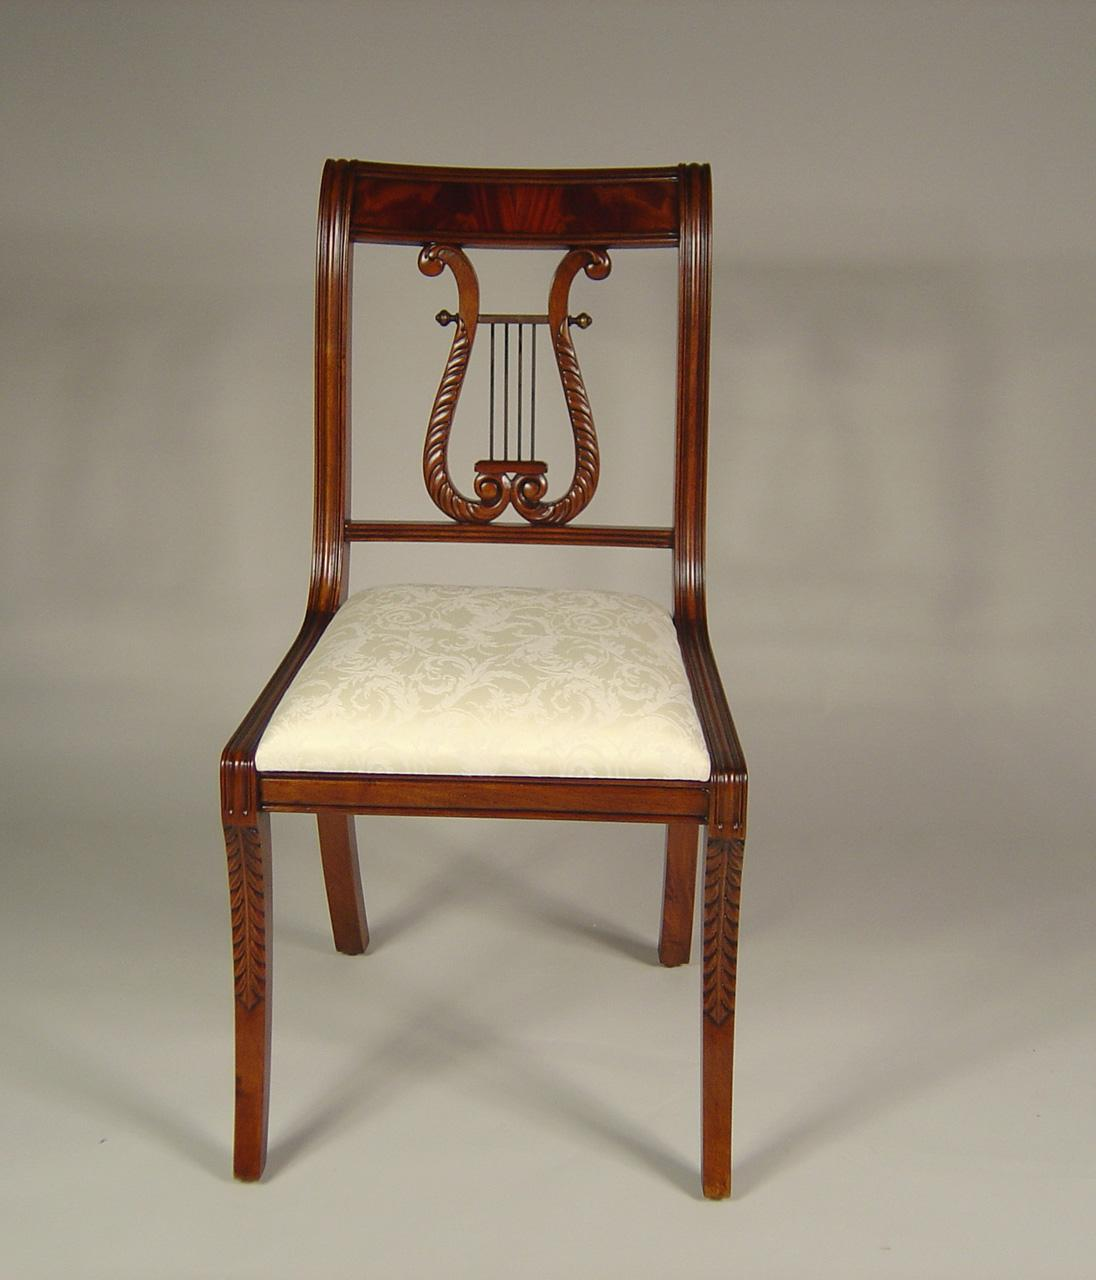 Outstanding Antique Harp Back Dining Chair 1096 x 1280 · 83 kB · jpeg